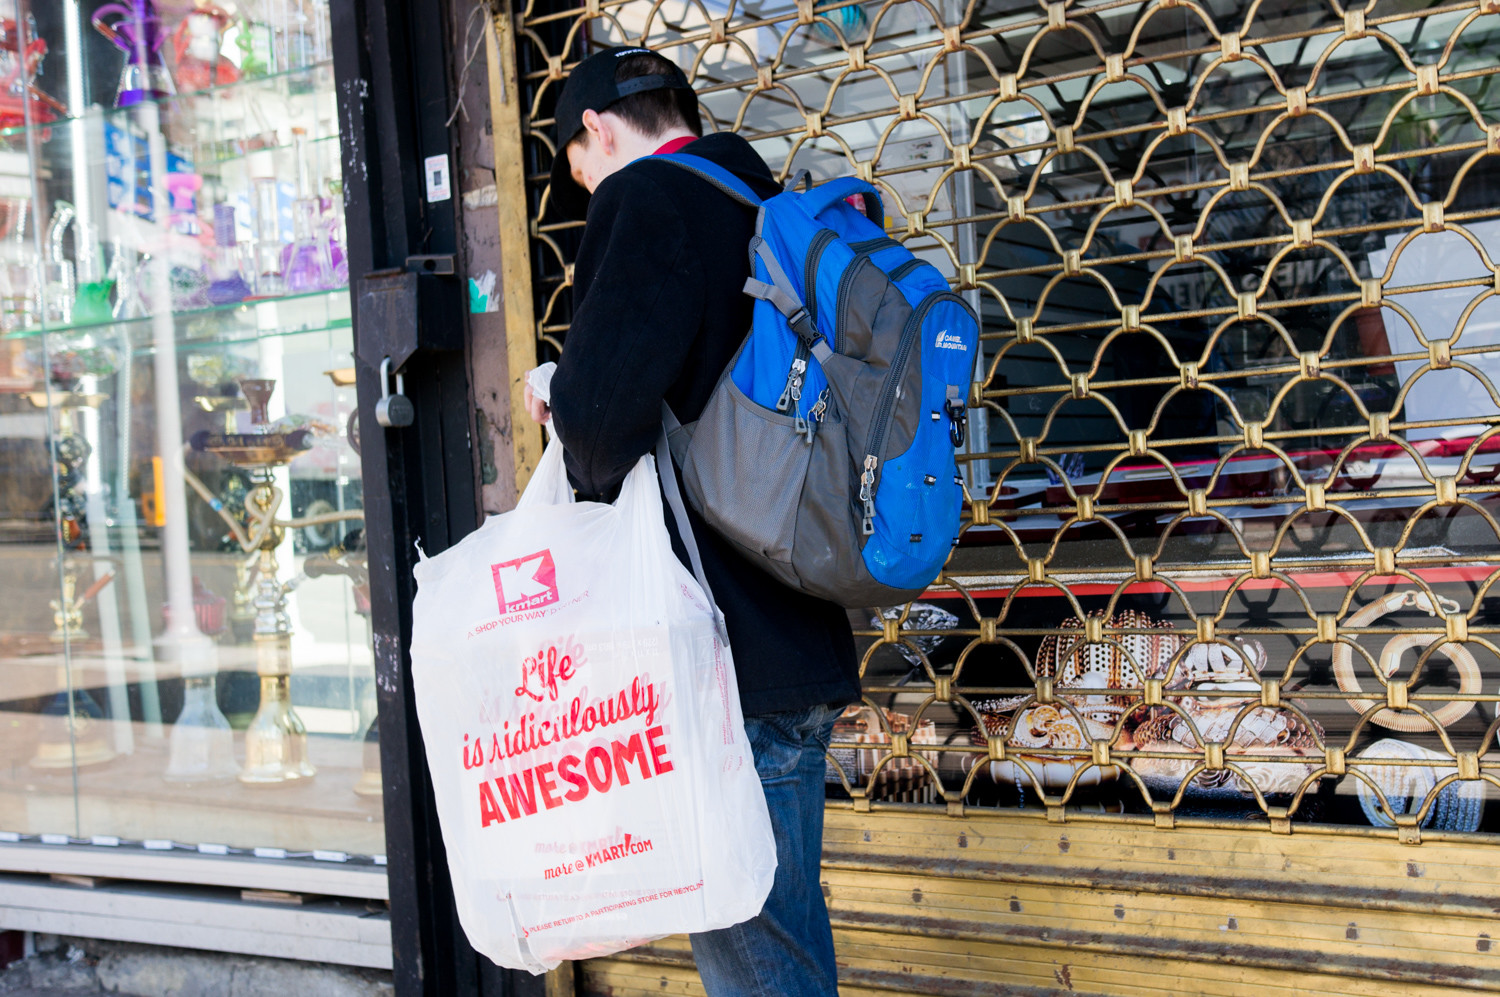 A pedestrian on West 231st Street near Broadway carries a plastic bag from Kmart that reads, 'Life is ridiculously awesome.' Yet hundreds of organizations across the state find plastic bags to be just the opposite, a blight on the environment and a costly source of waste.